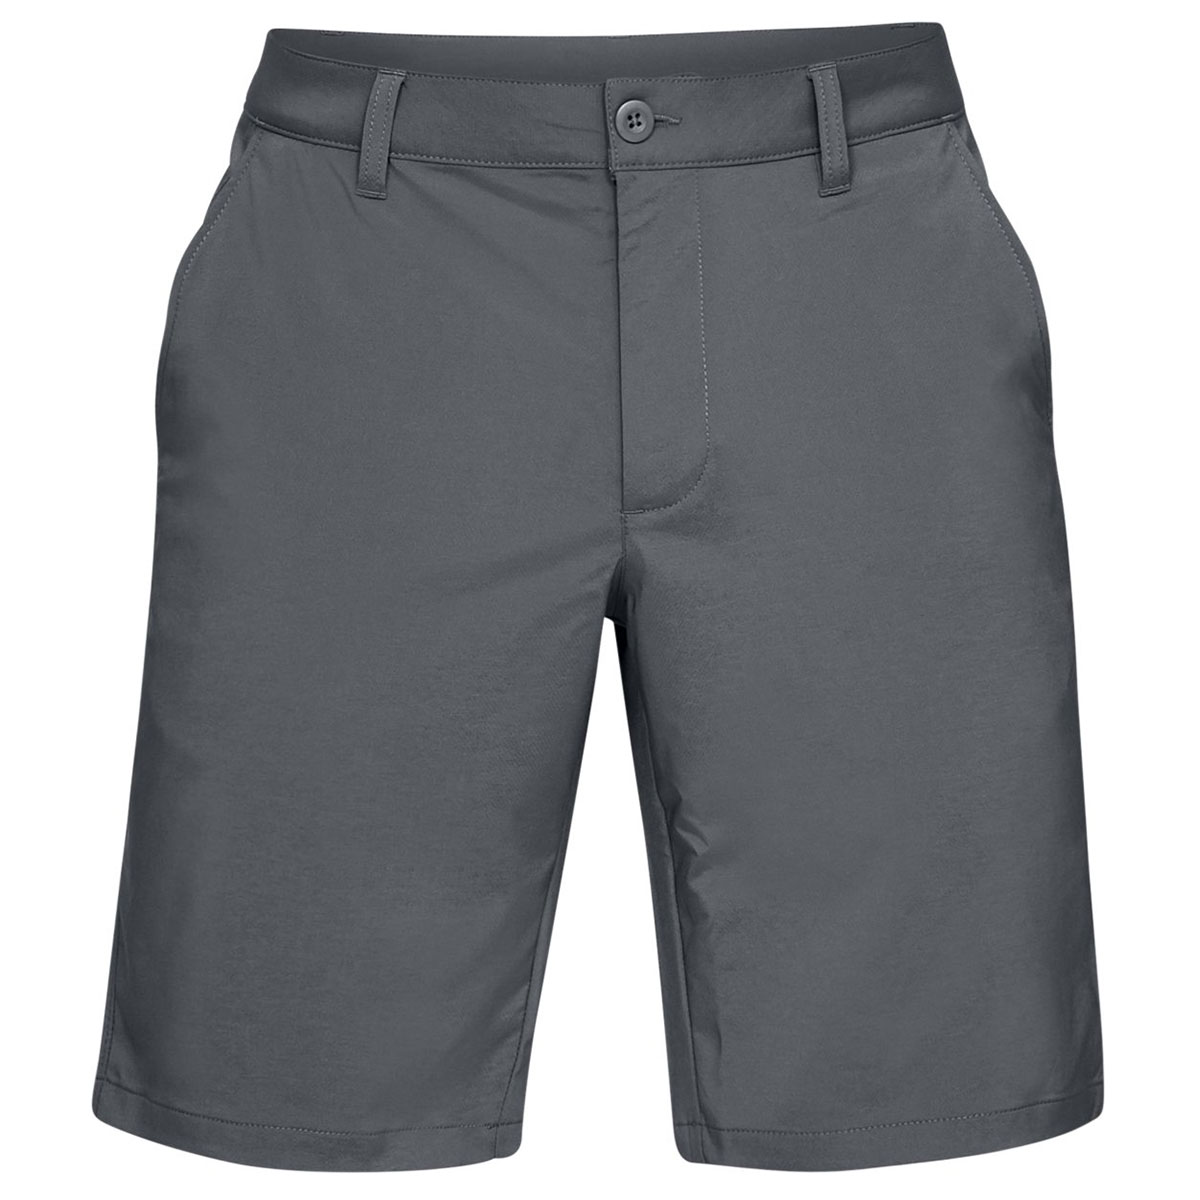 Under-Armour-Mens-EU-Tech-Stretch-Soft-Fitted-Golf-Shorts Indexbild 16